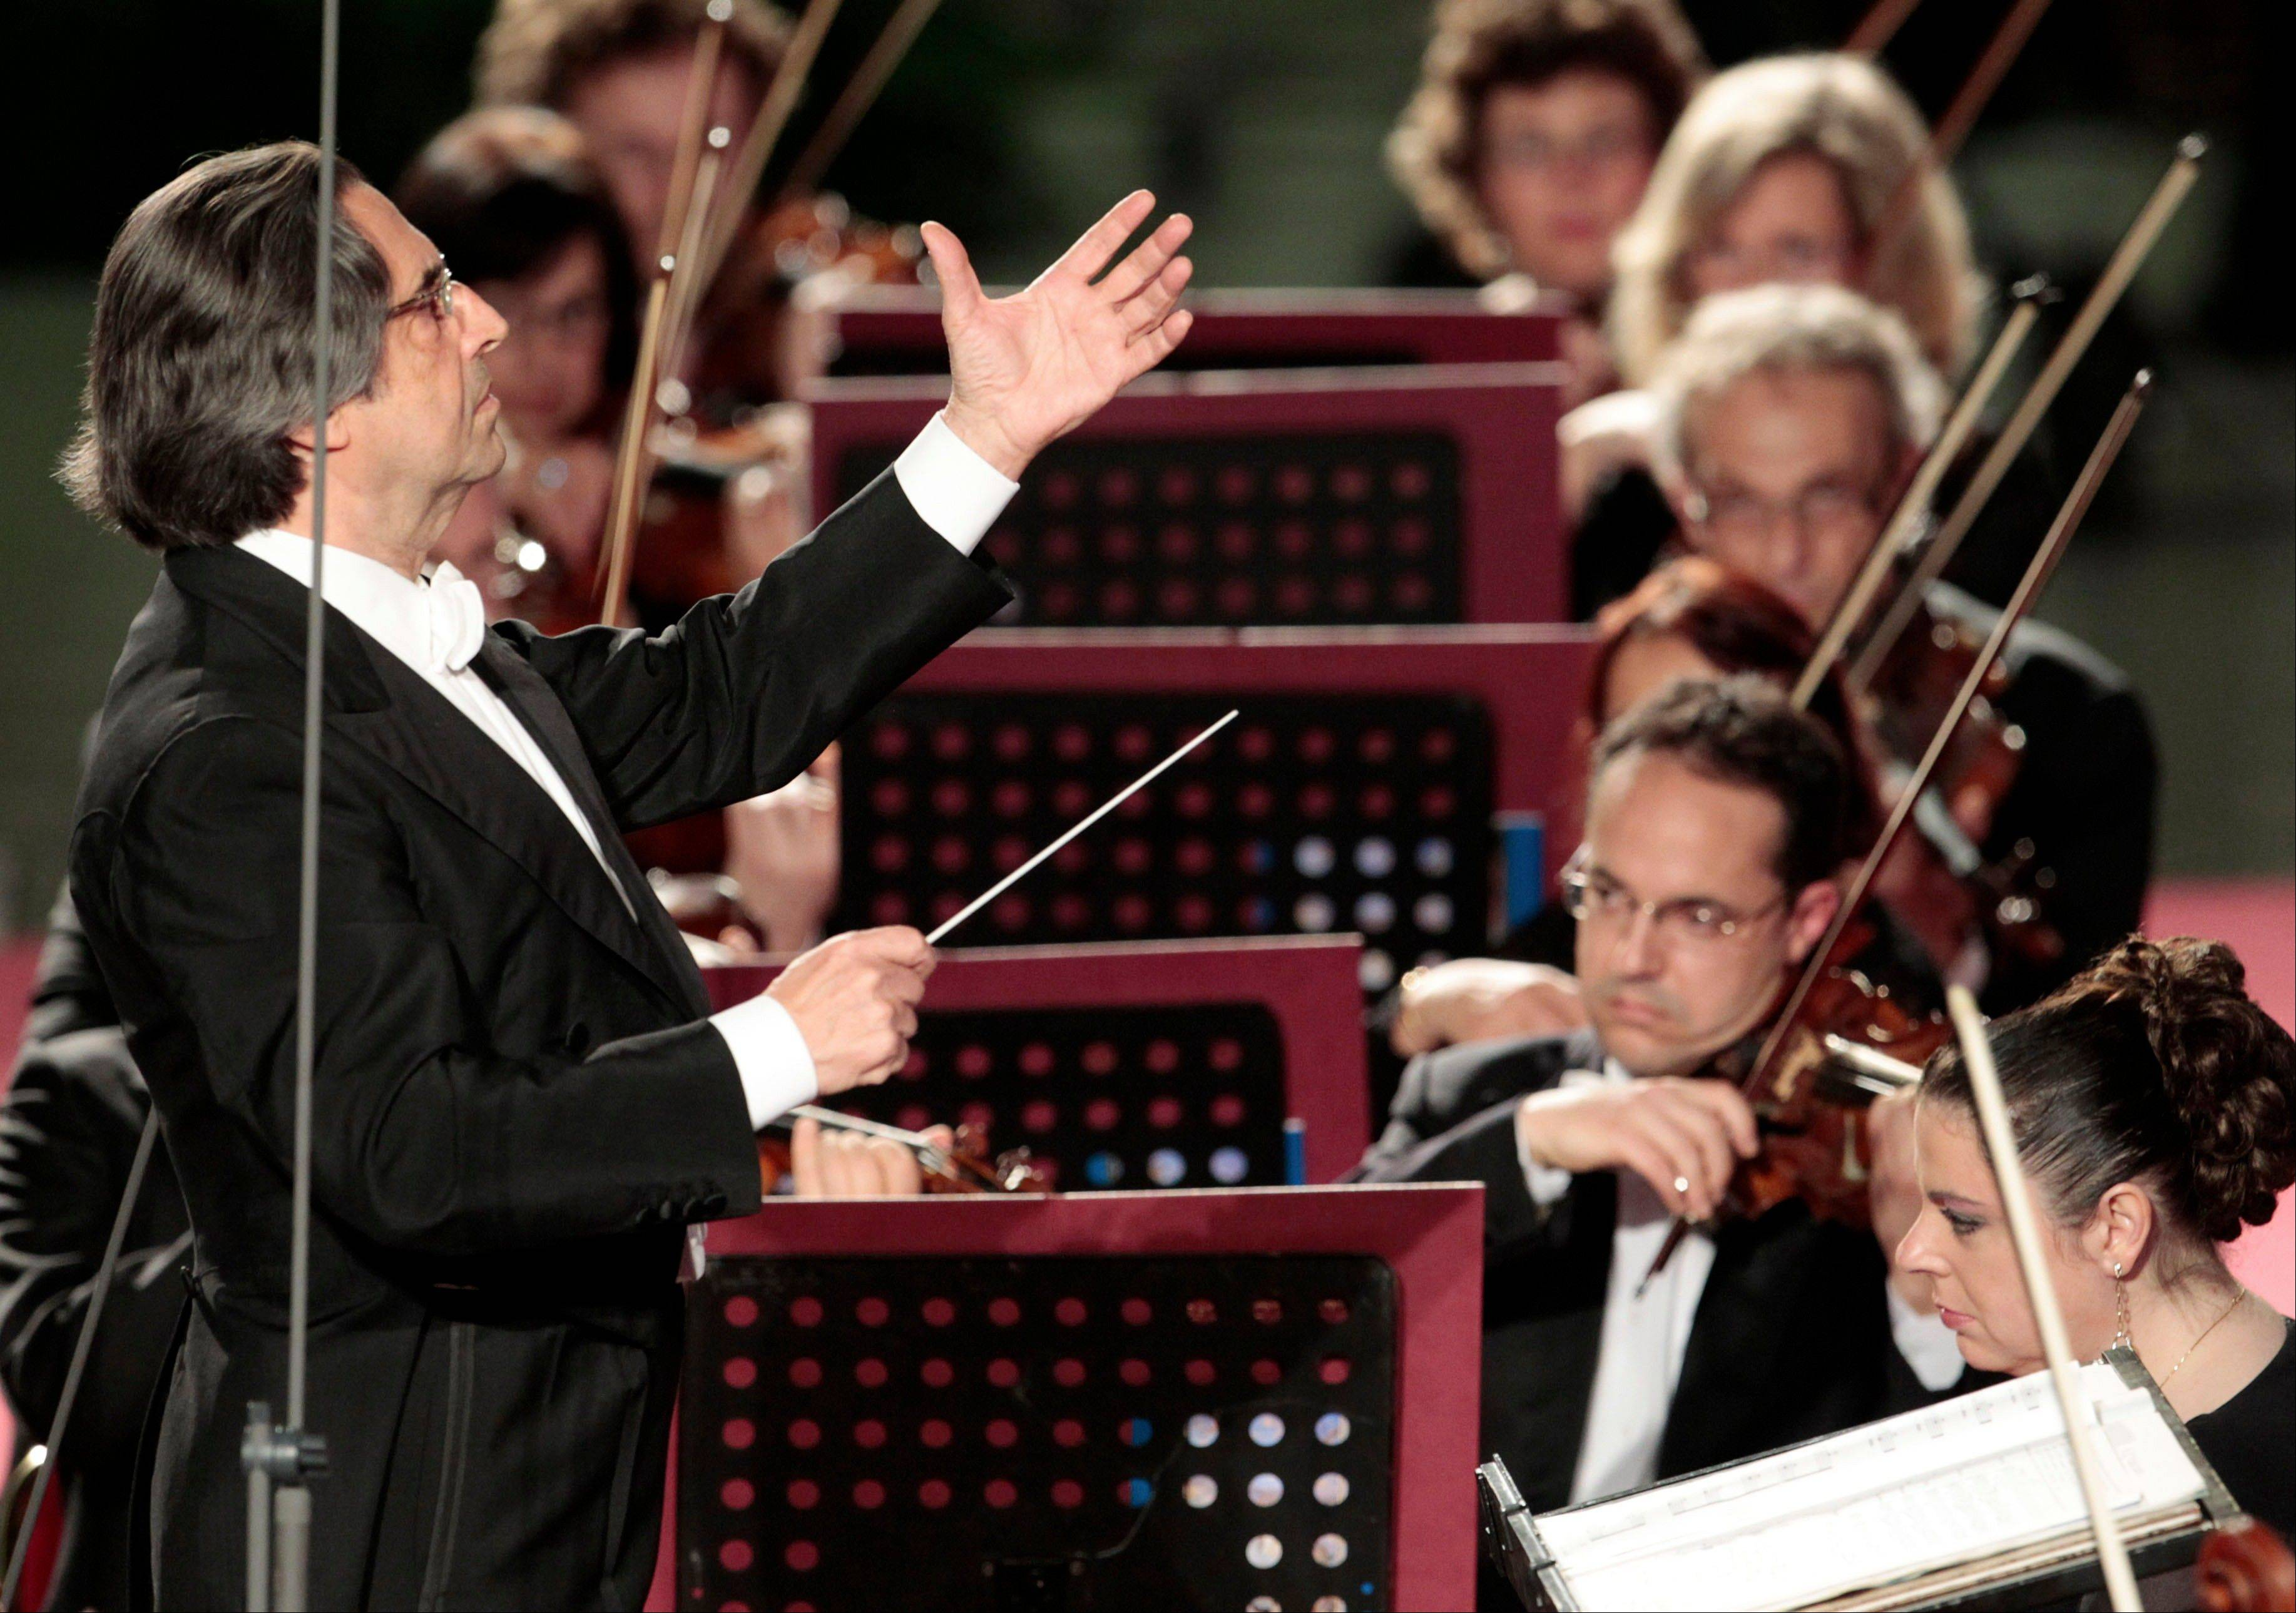 Riccardo Muti, the master conductor, says he is worried that the stubborn financial crisis in much of the world risks impoverishing not just public coffers, but also the arts.